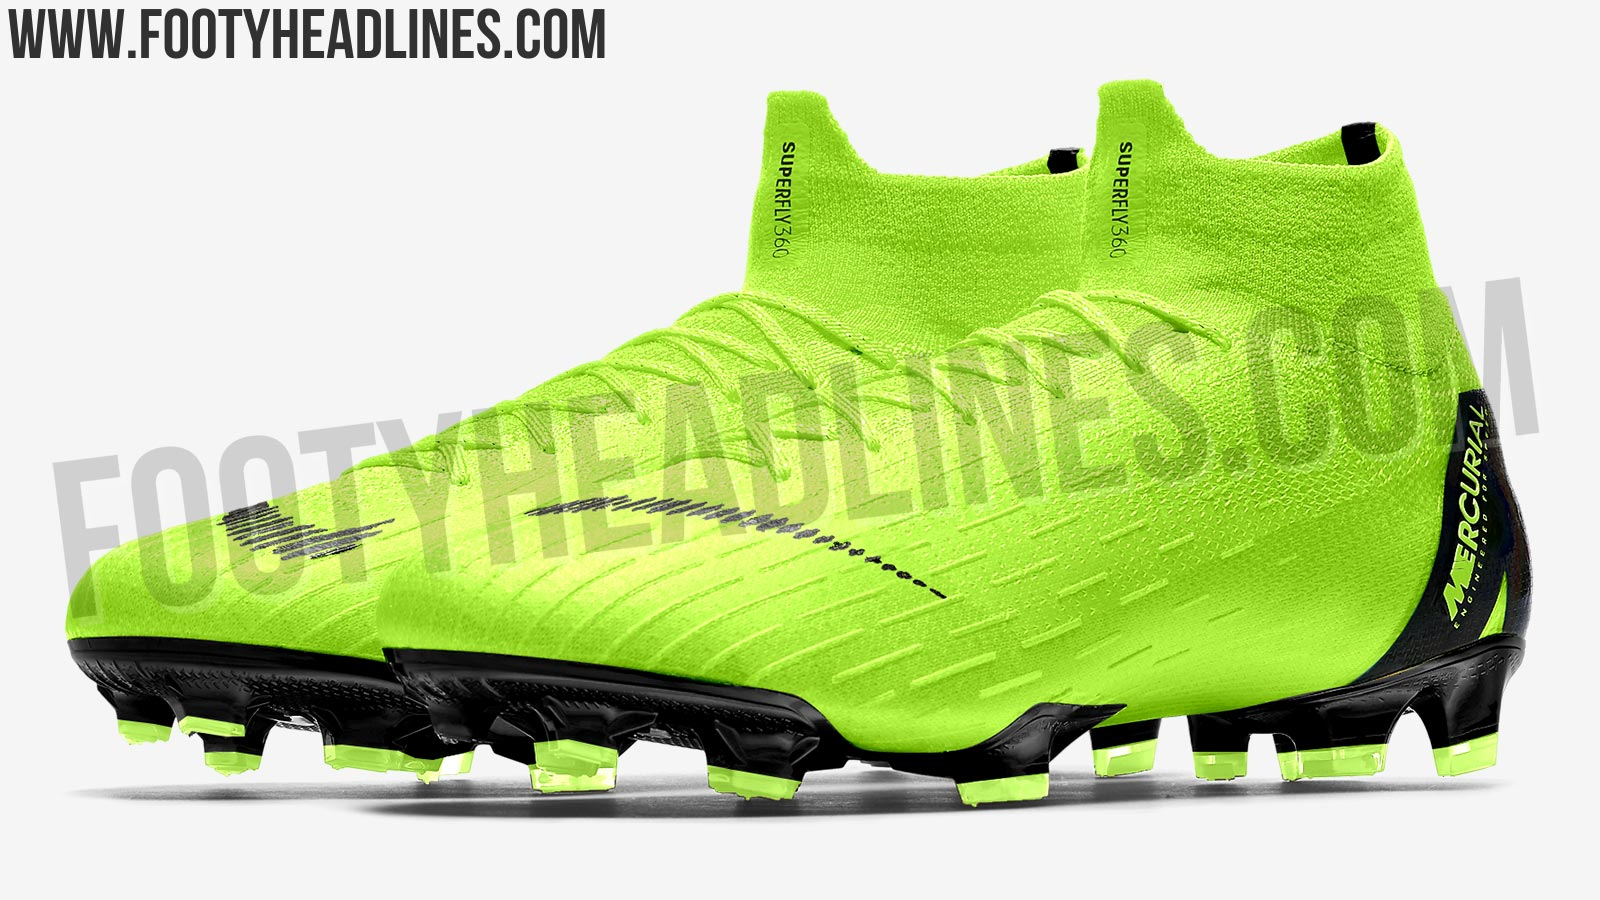 volt nike mercurial superfly 360 2018 2019 boots leaked footy headlines. Black Bedroom Furniture Sets. Home Design Ideas